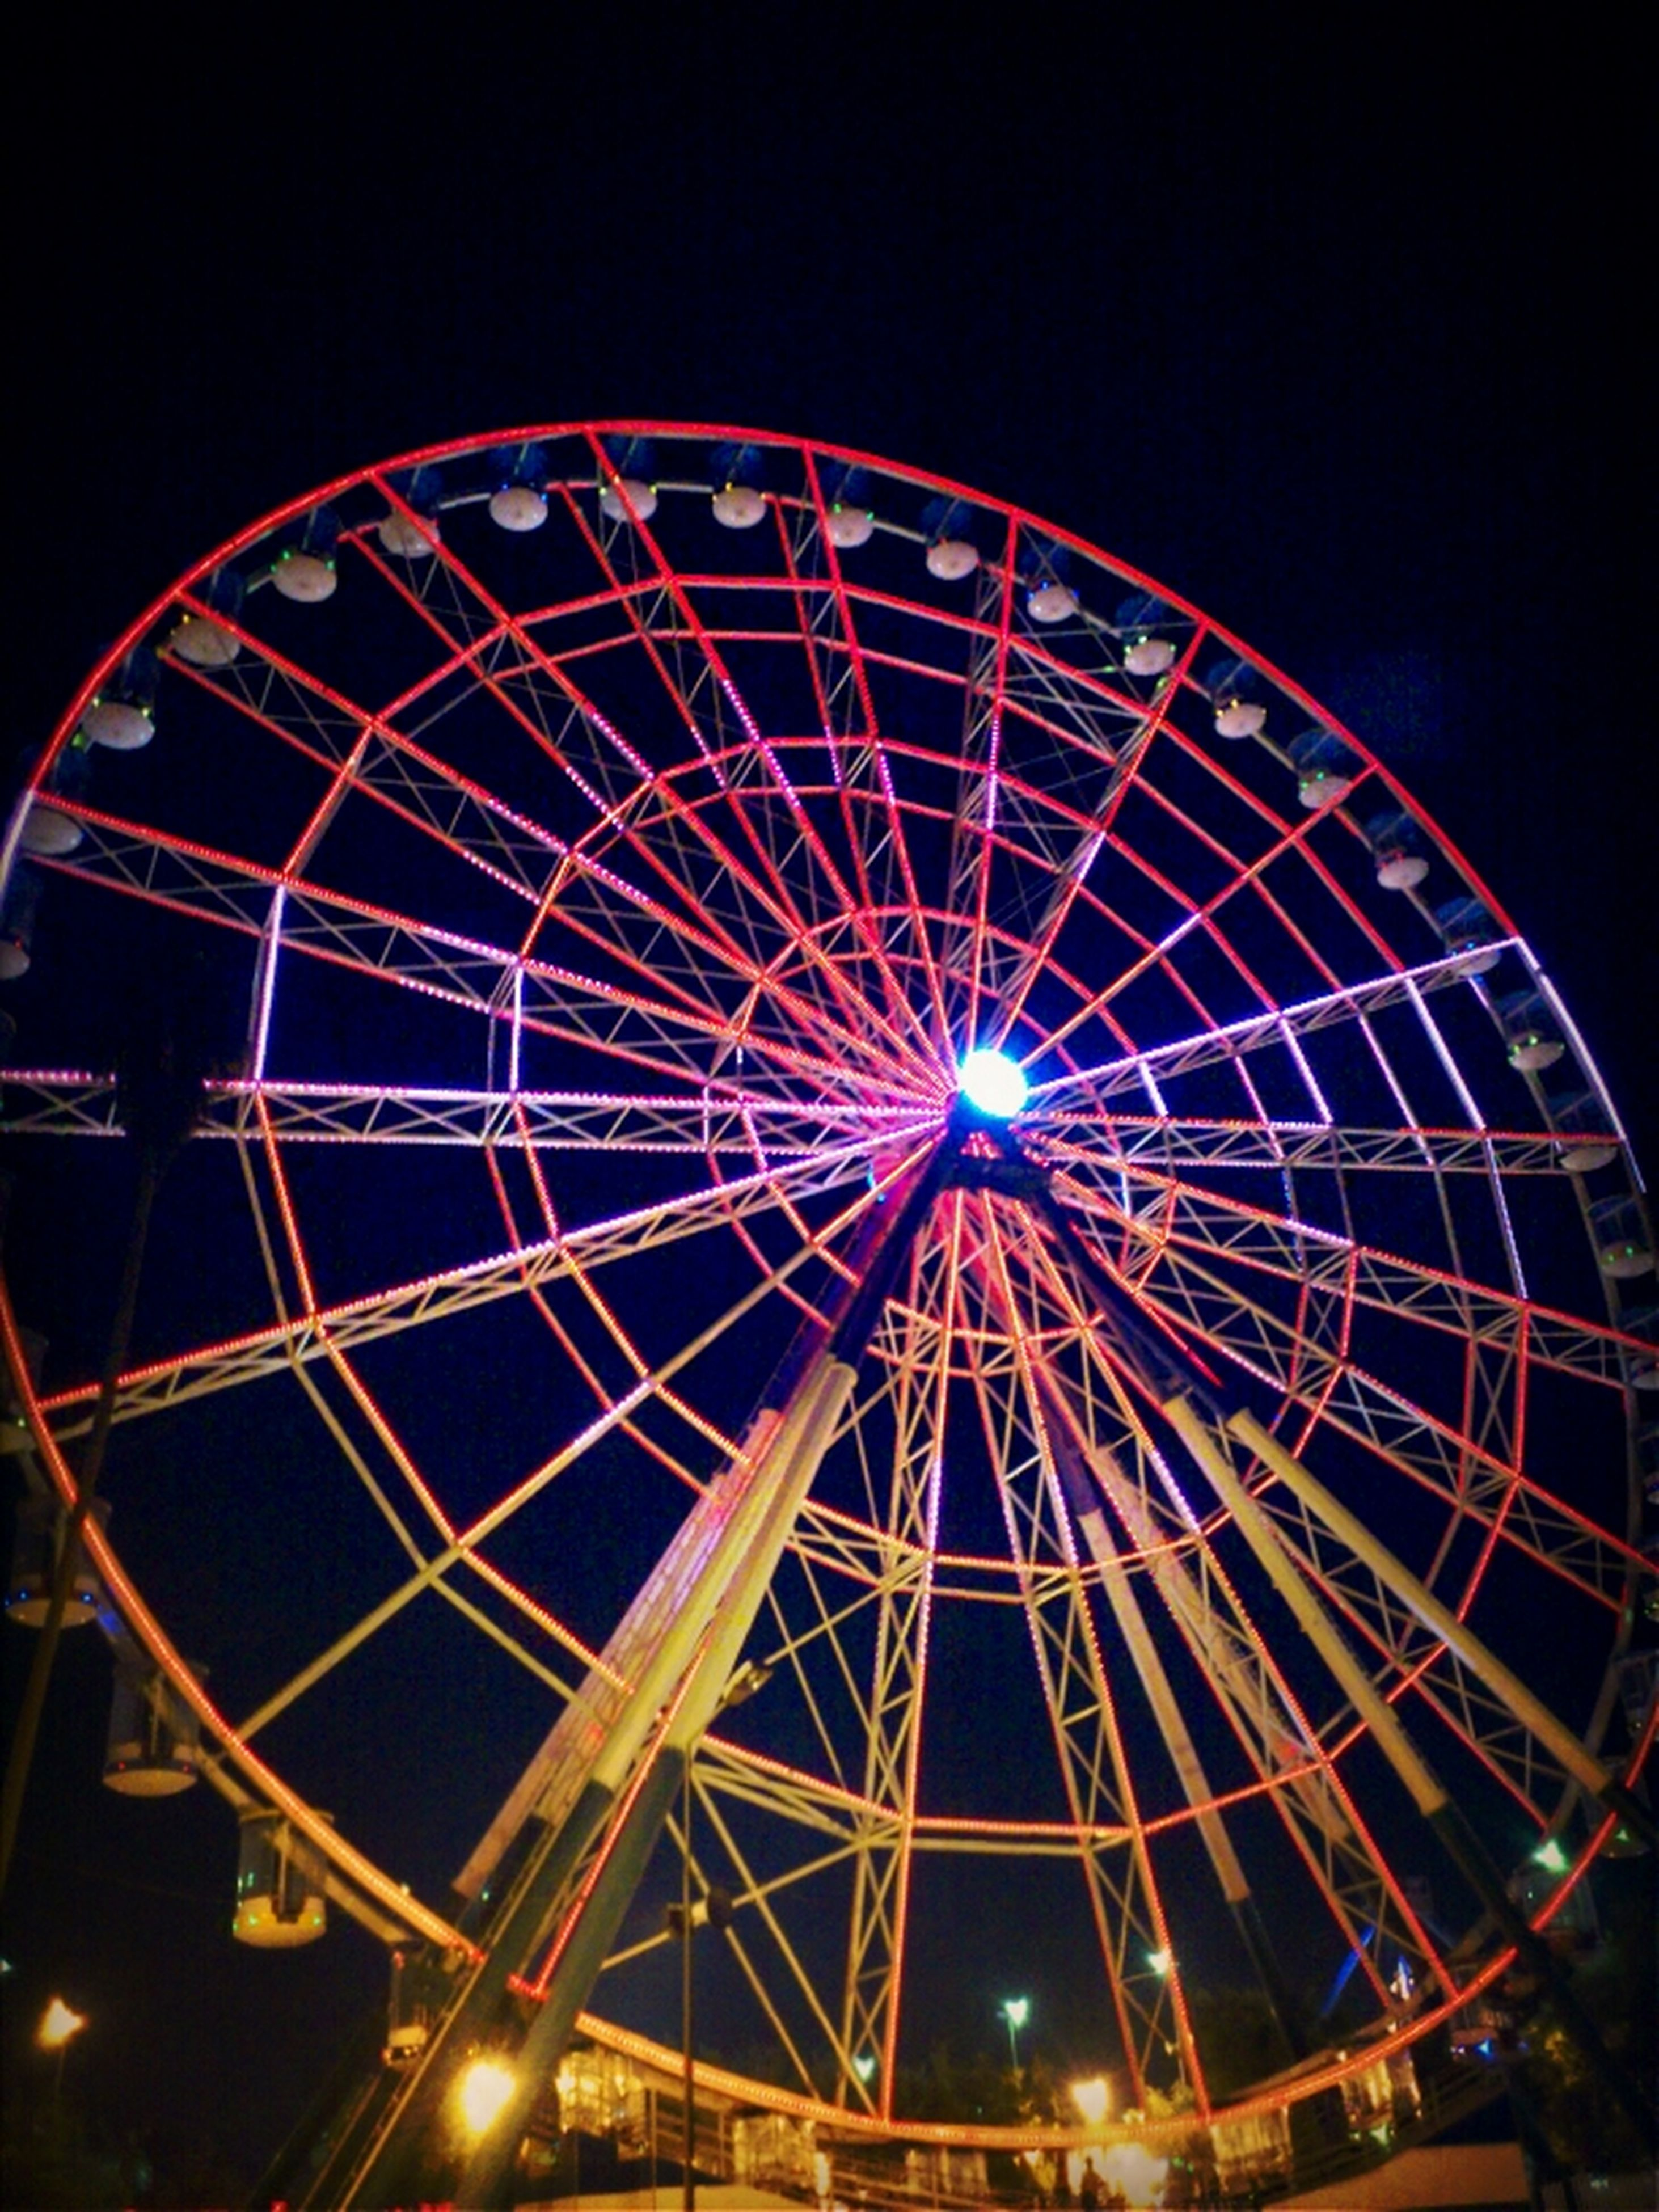 amusement park ride, amusement park, ferris wheel, arts culture and entertainment, low angle view, illuminated, night, sky, circle, fun, big wheel, enjoyment, multi colored, large, clear sky, built structure, outdoors, traveling carnival, geometric shape, no people